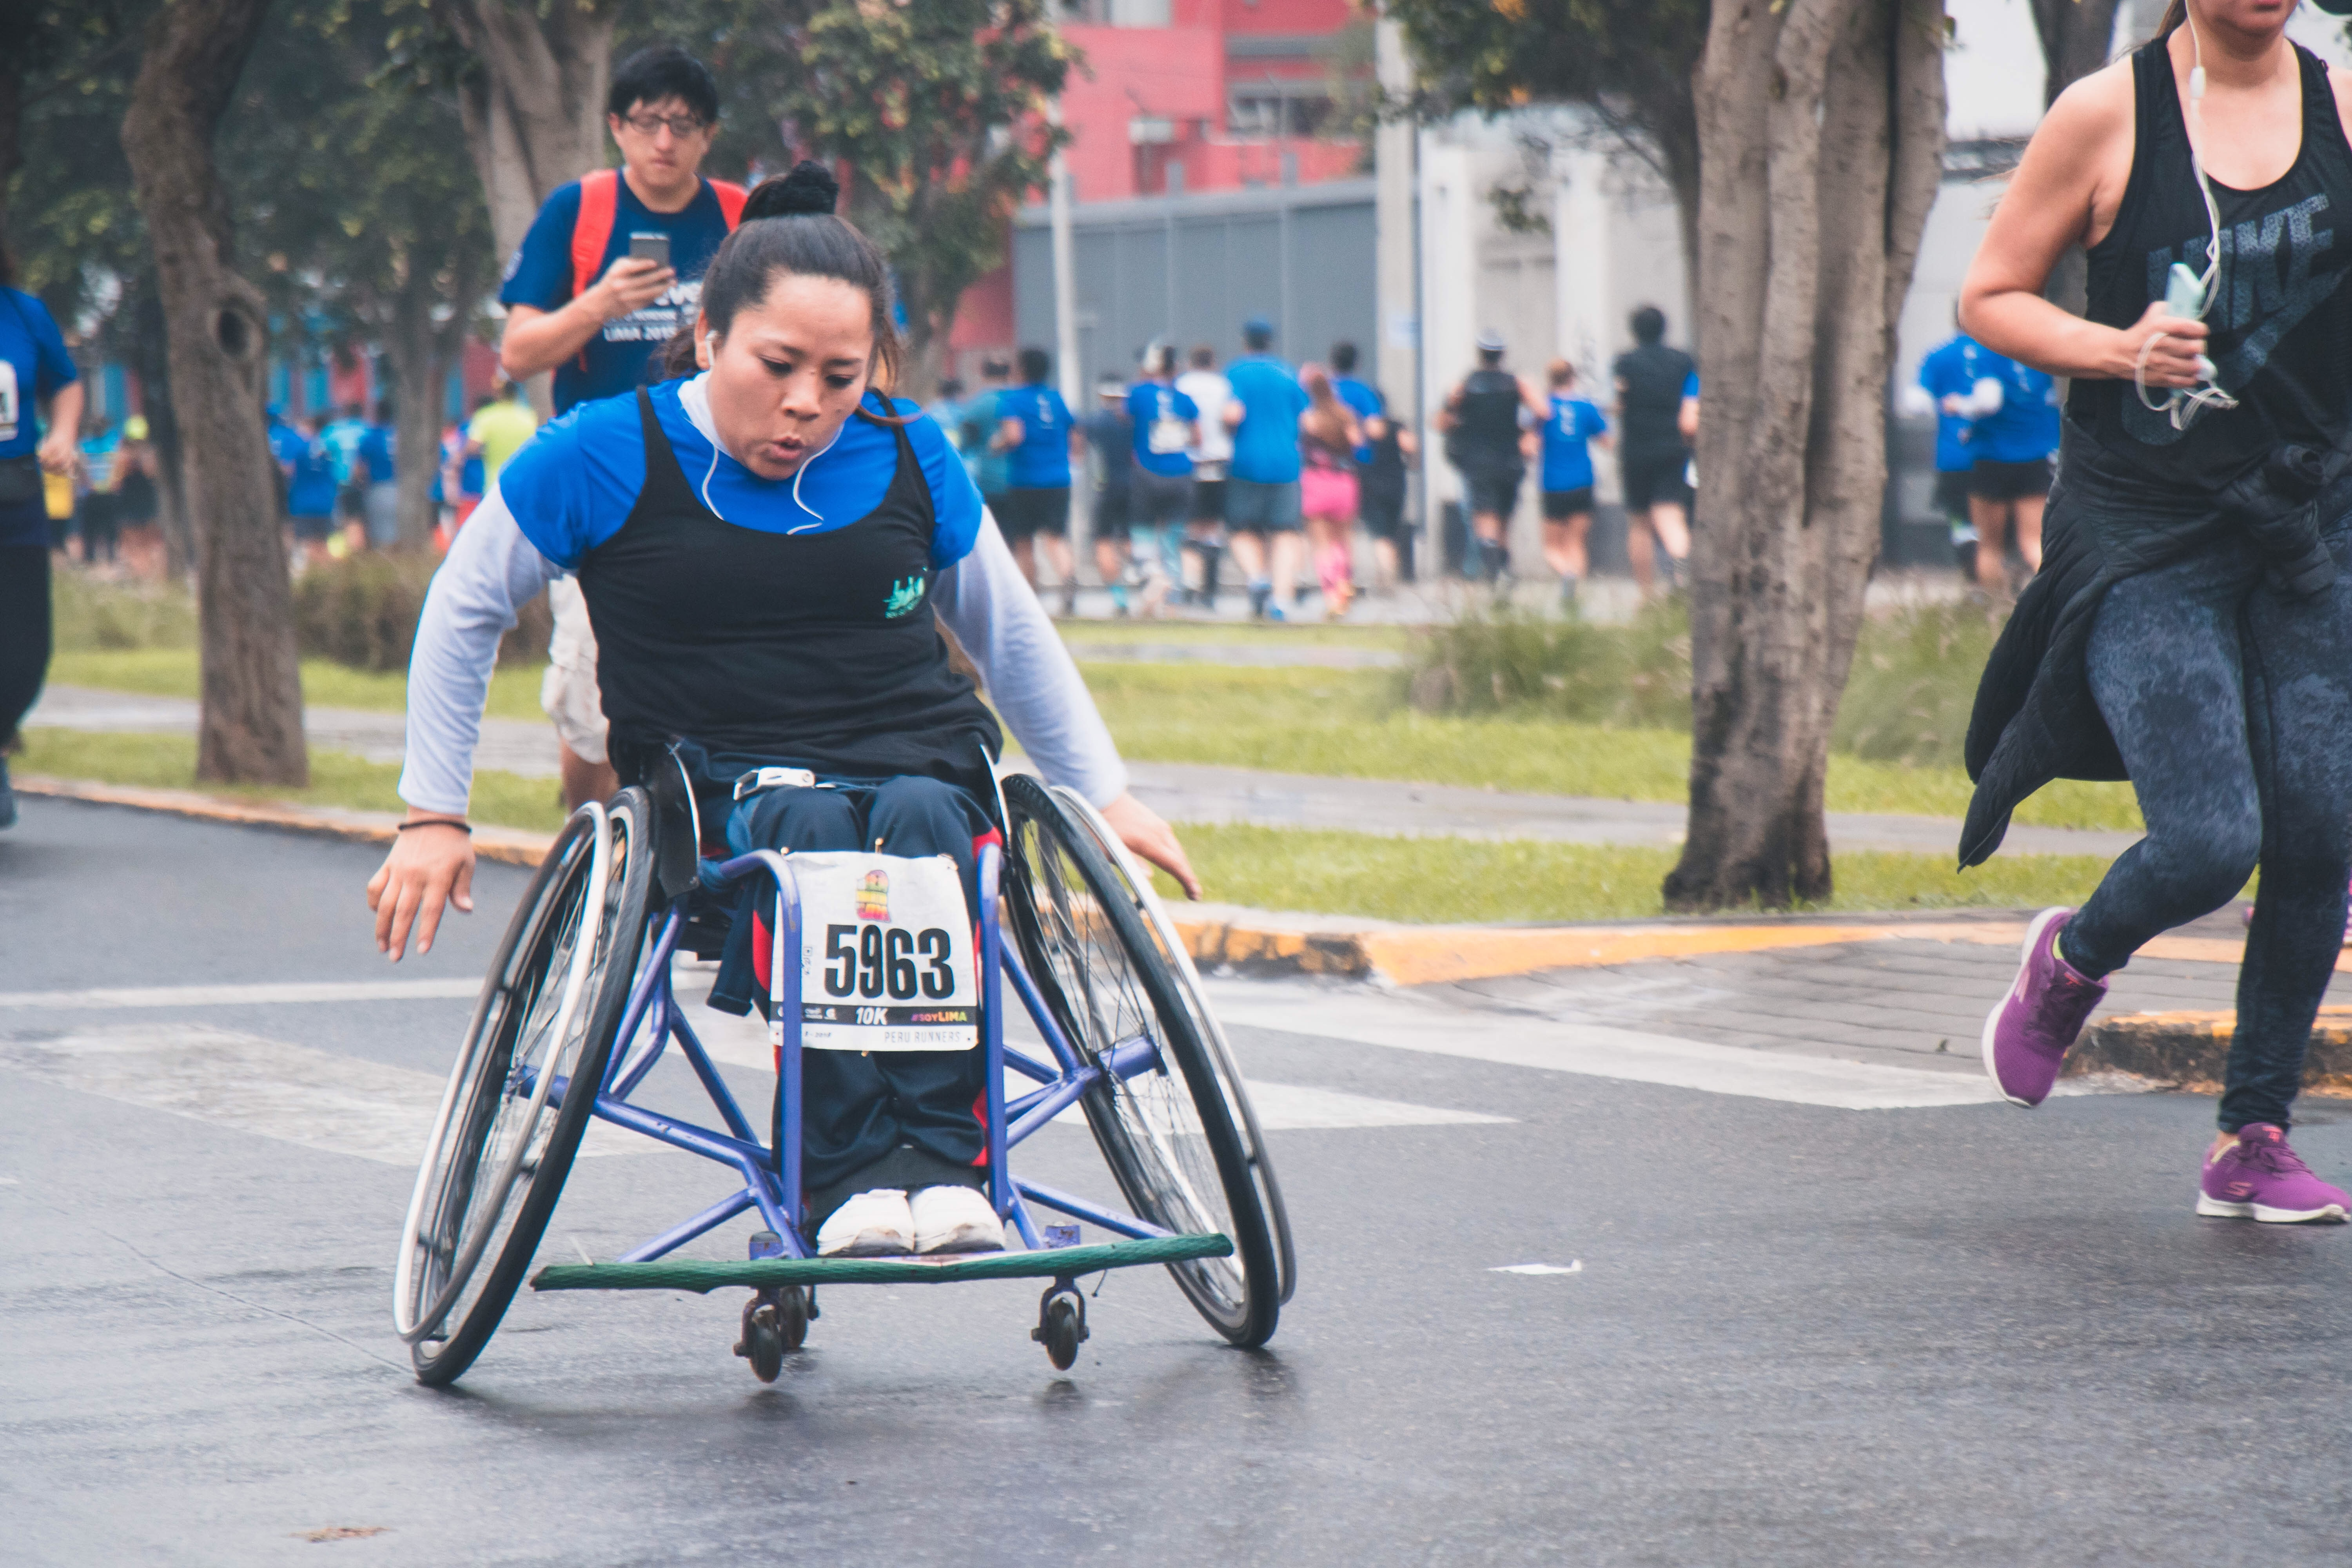 Image shows a woman in a wheelchair taking part in a marathon.